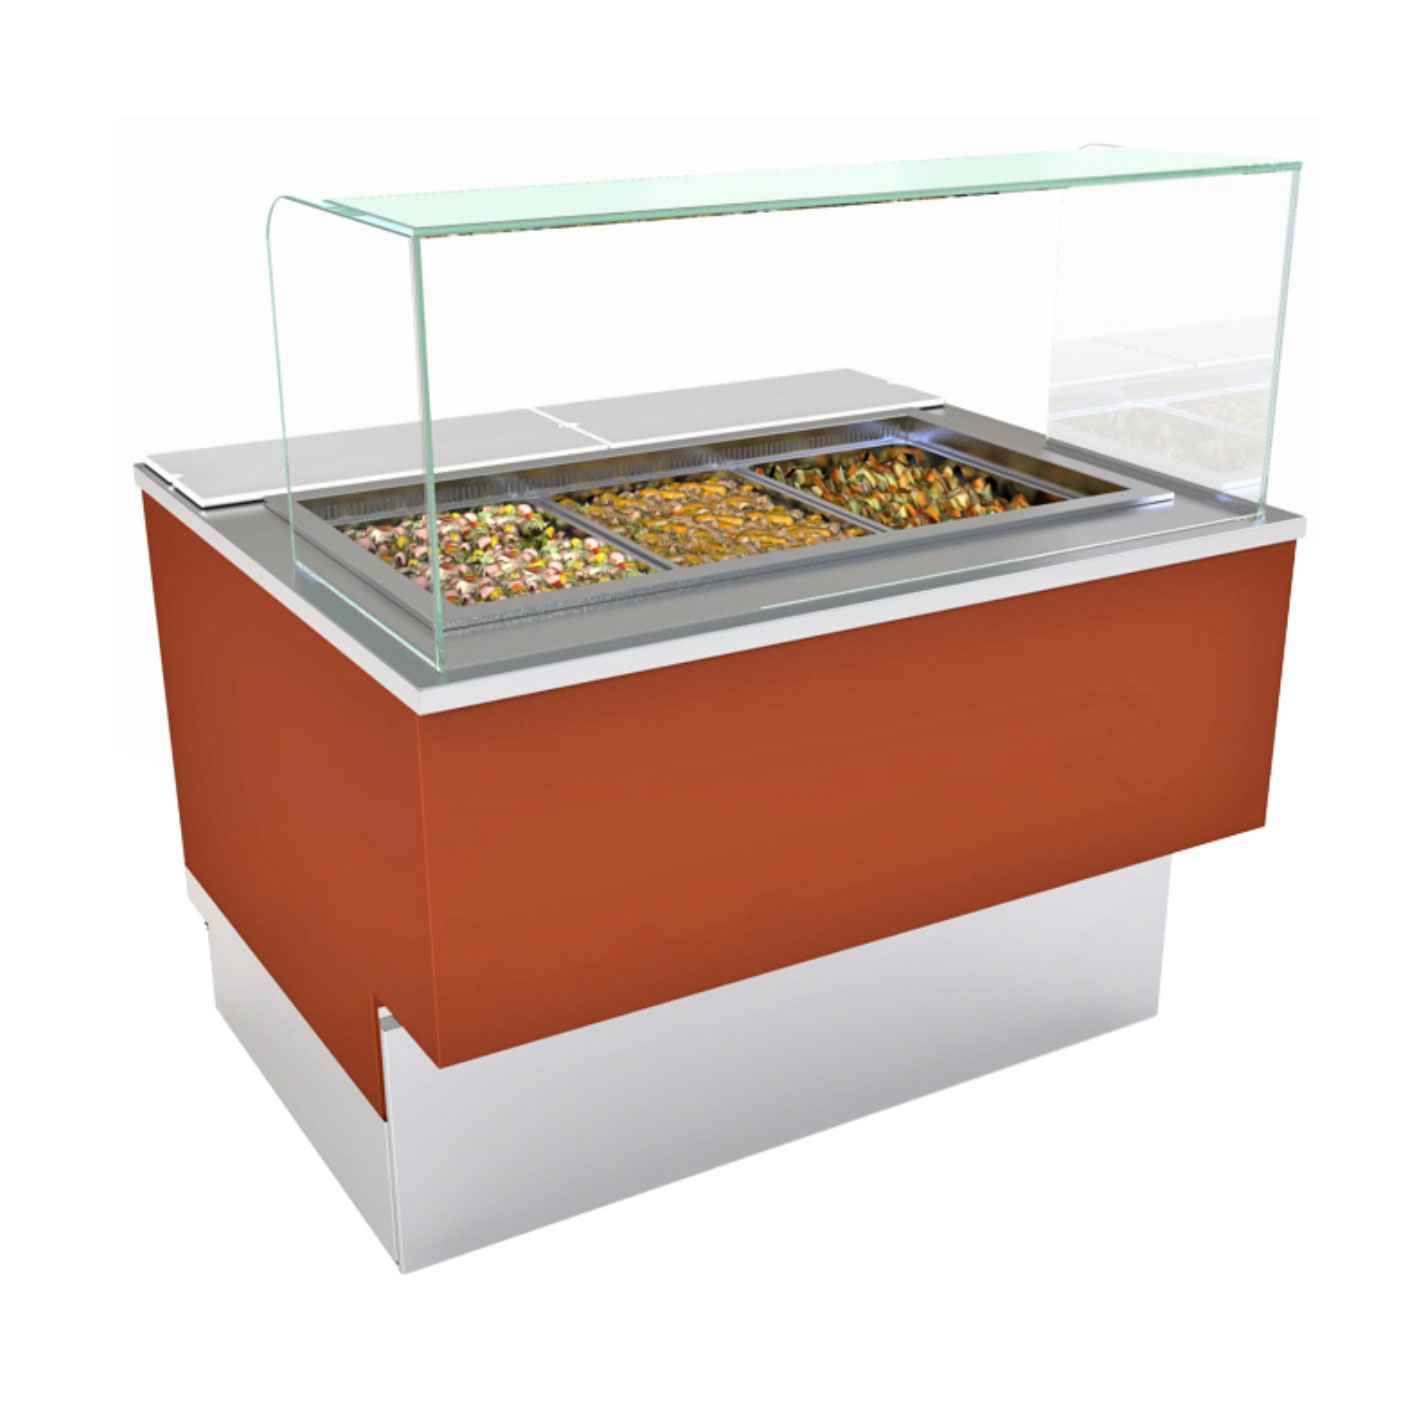 Structural Concepts FB6S-5R serving counter, cold food